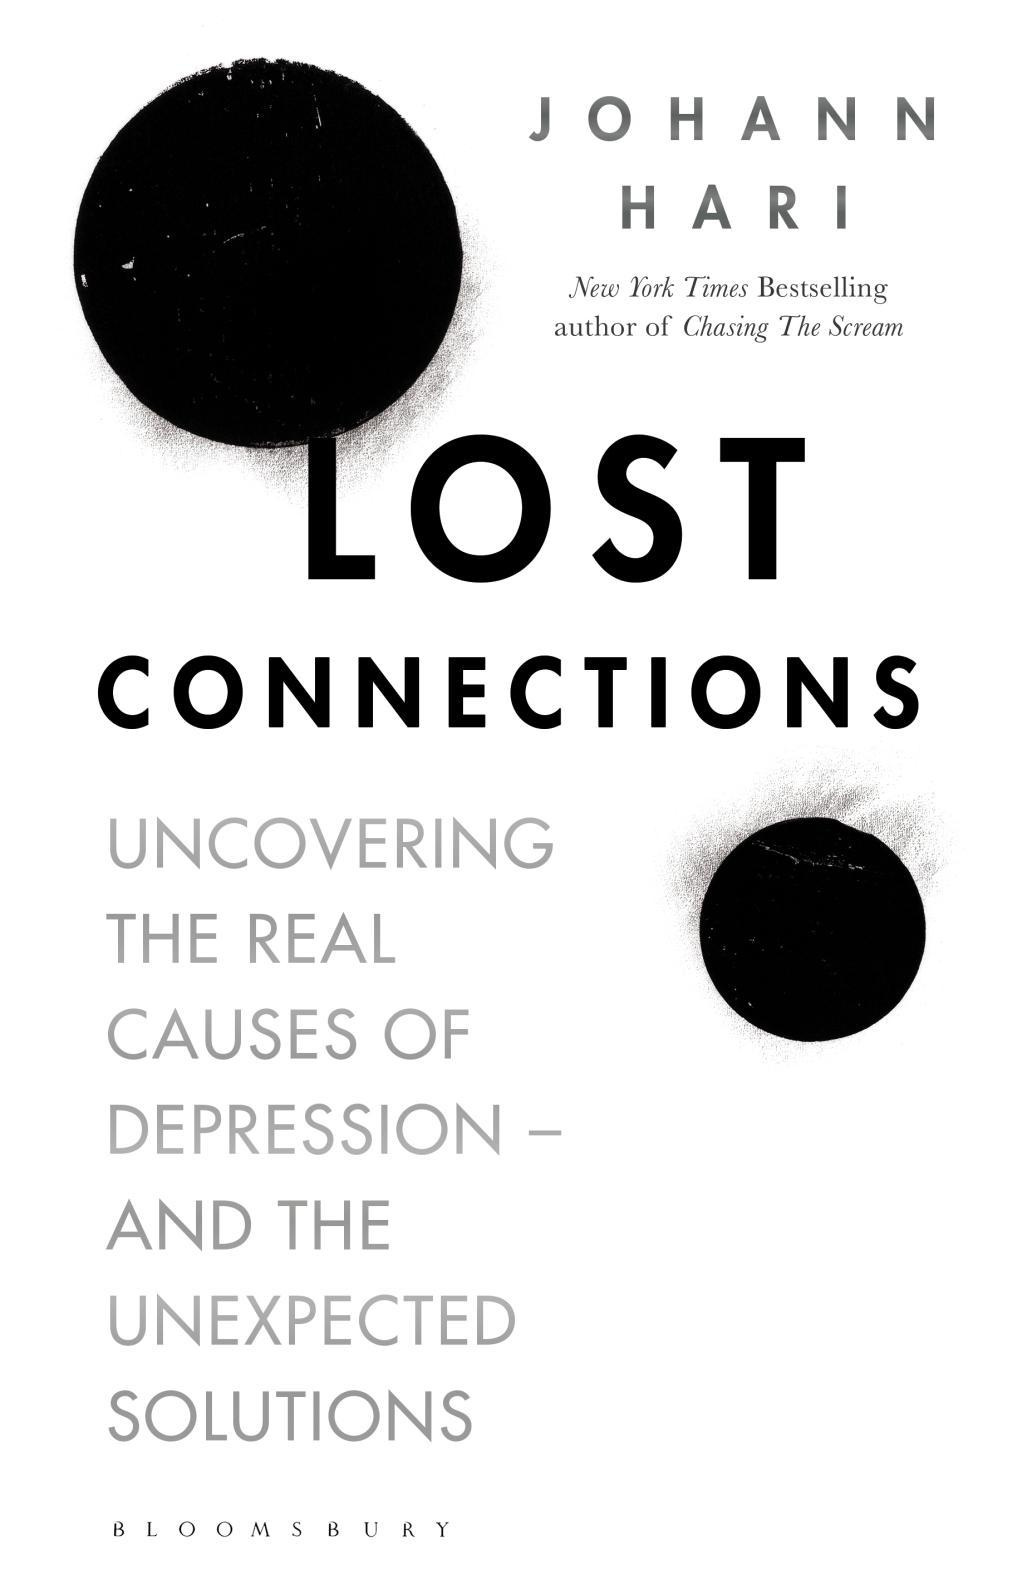 Lost Connections: Uncovering the Real Causes of Depression - and the Unexpected Solutions by Johann Hari, ISBN: 9781408878699